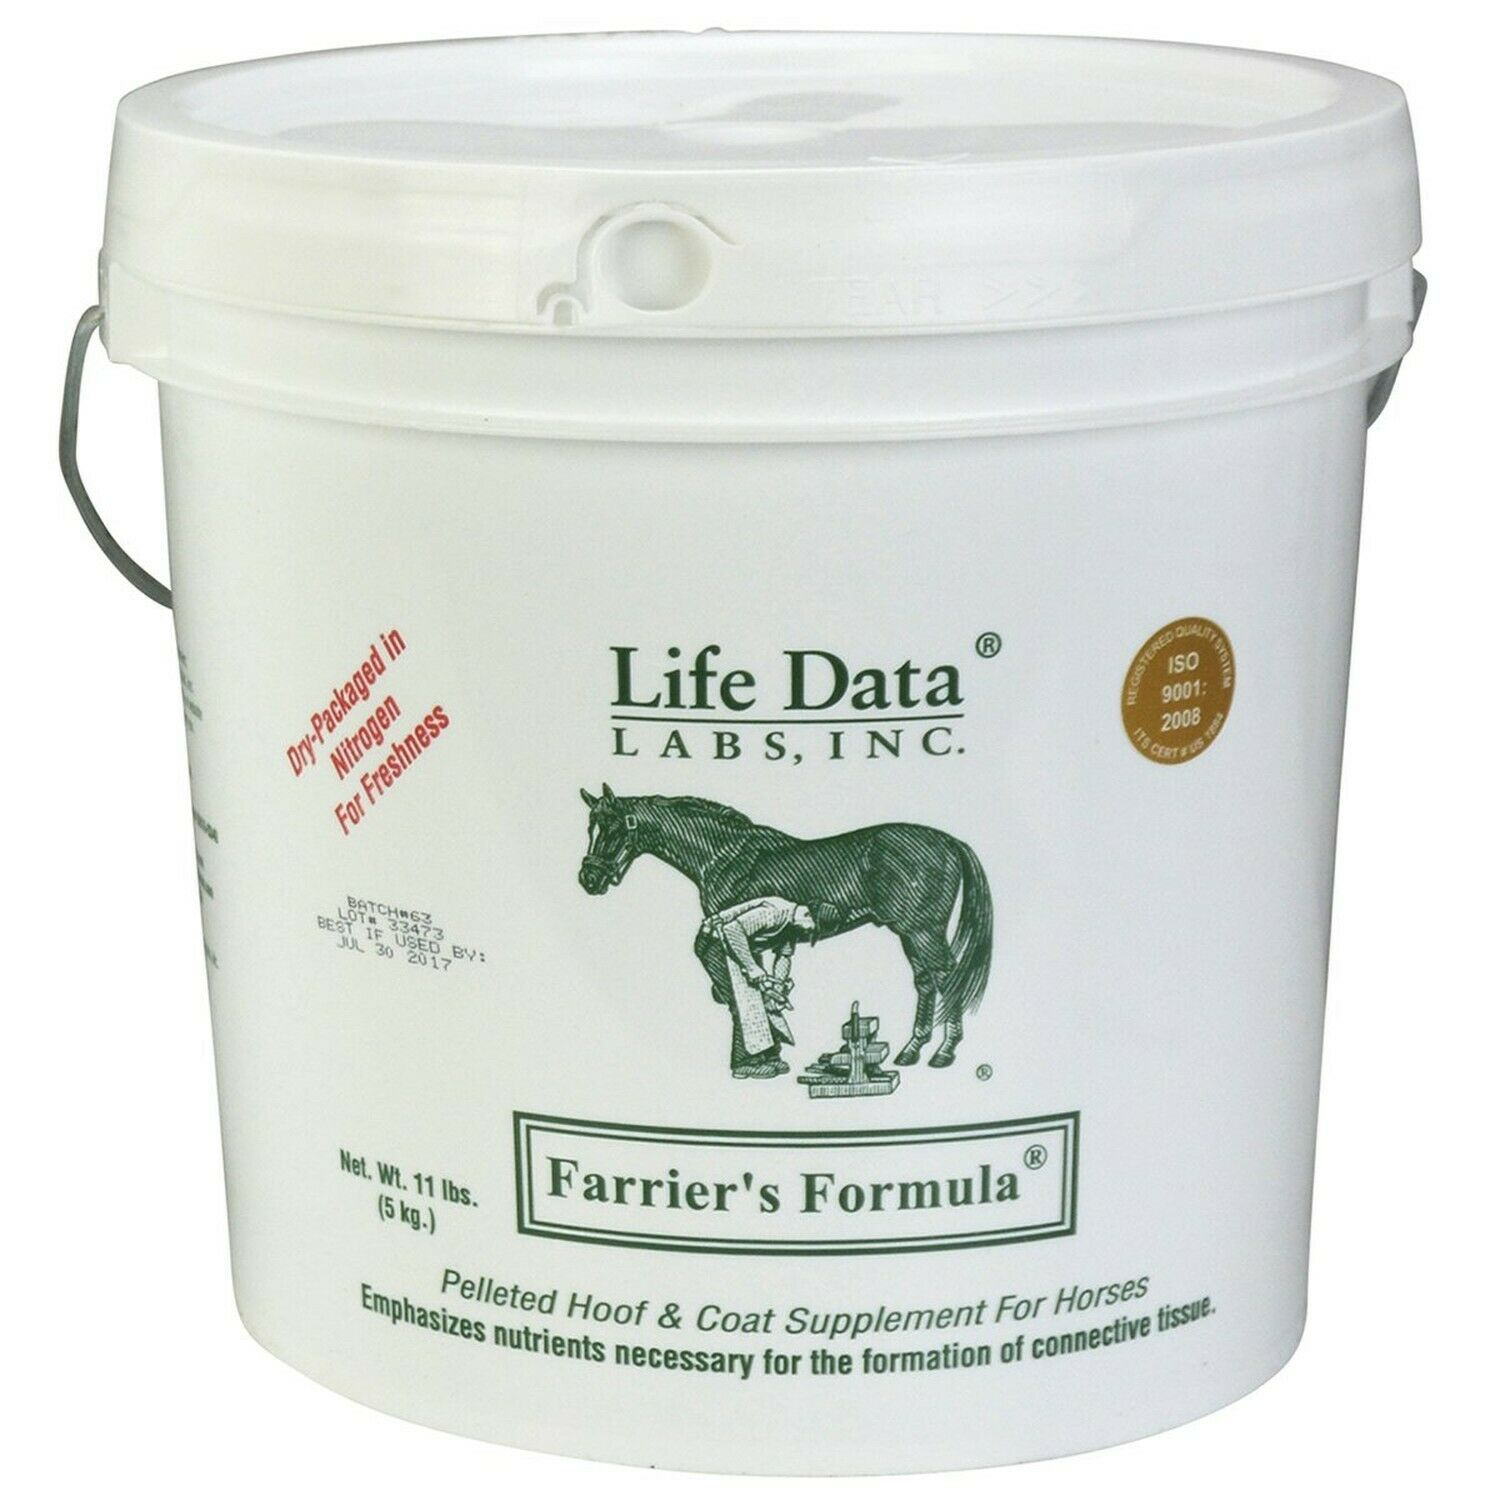 Life Data Farriers Formula Horse Food Size: 11-lb